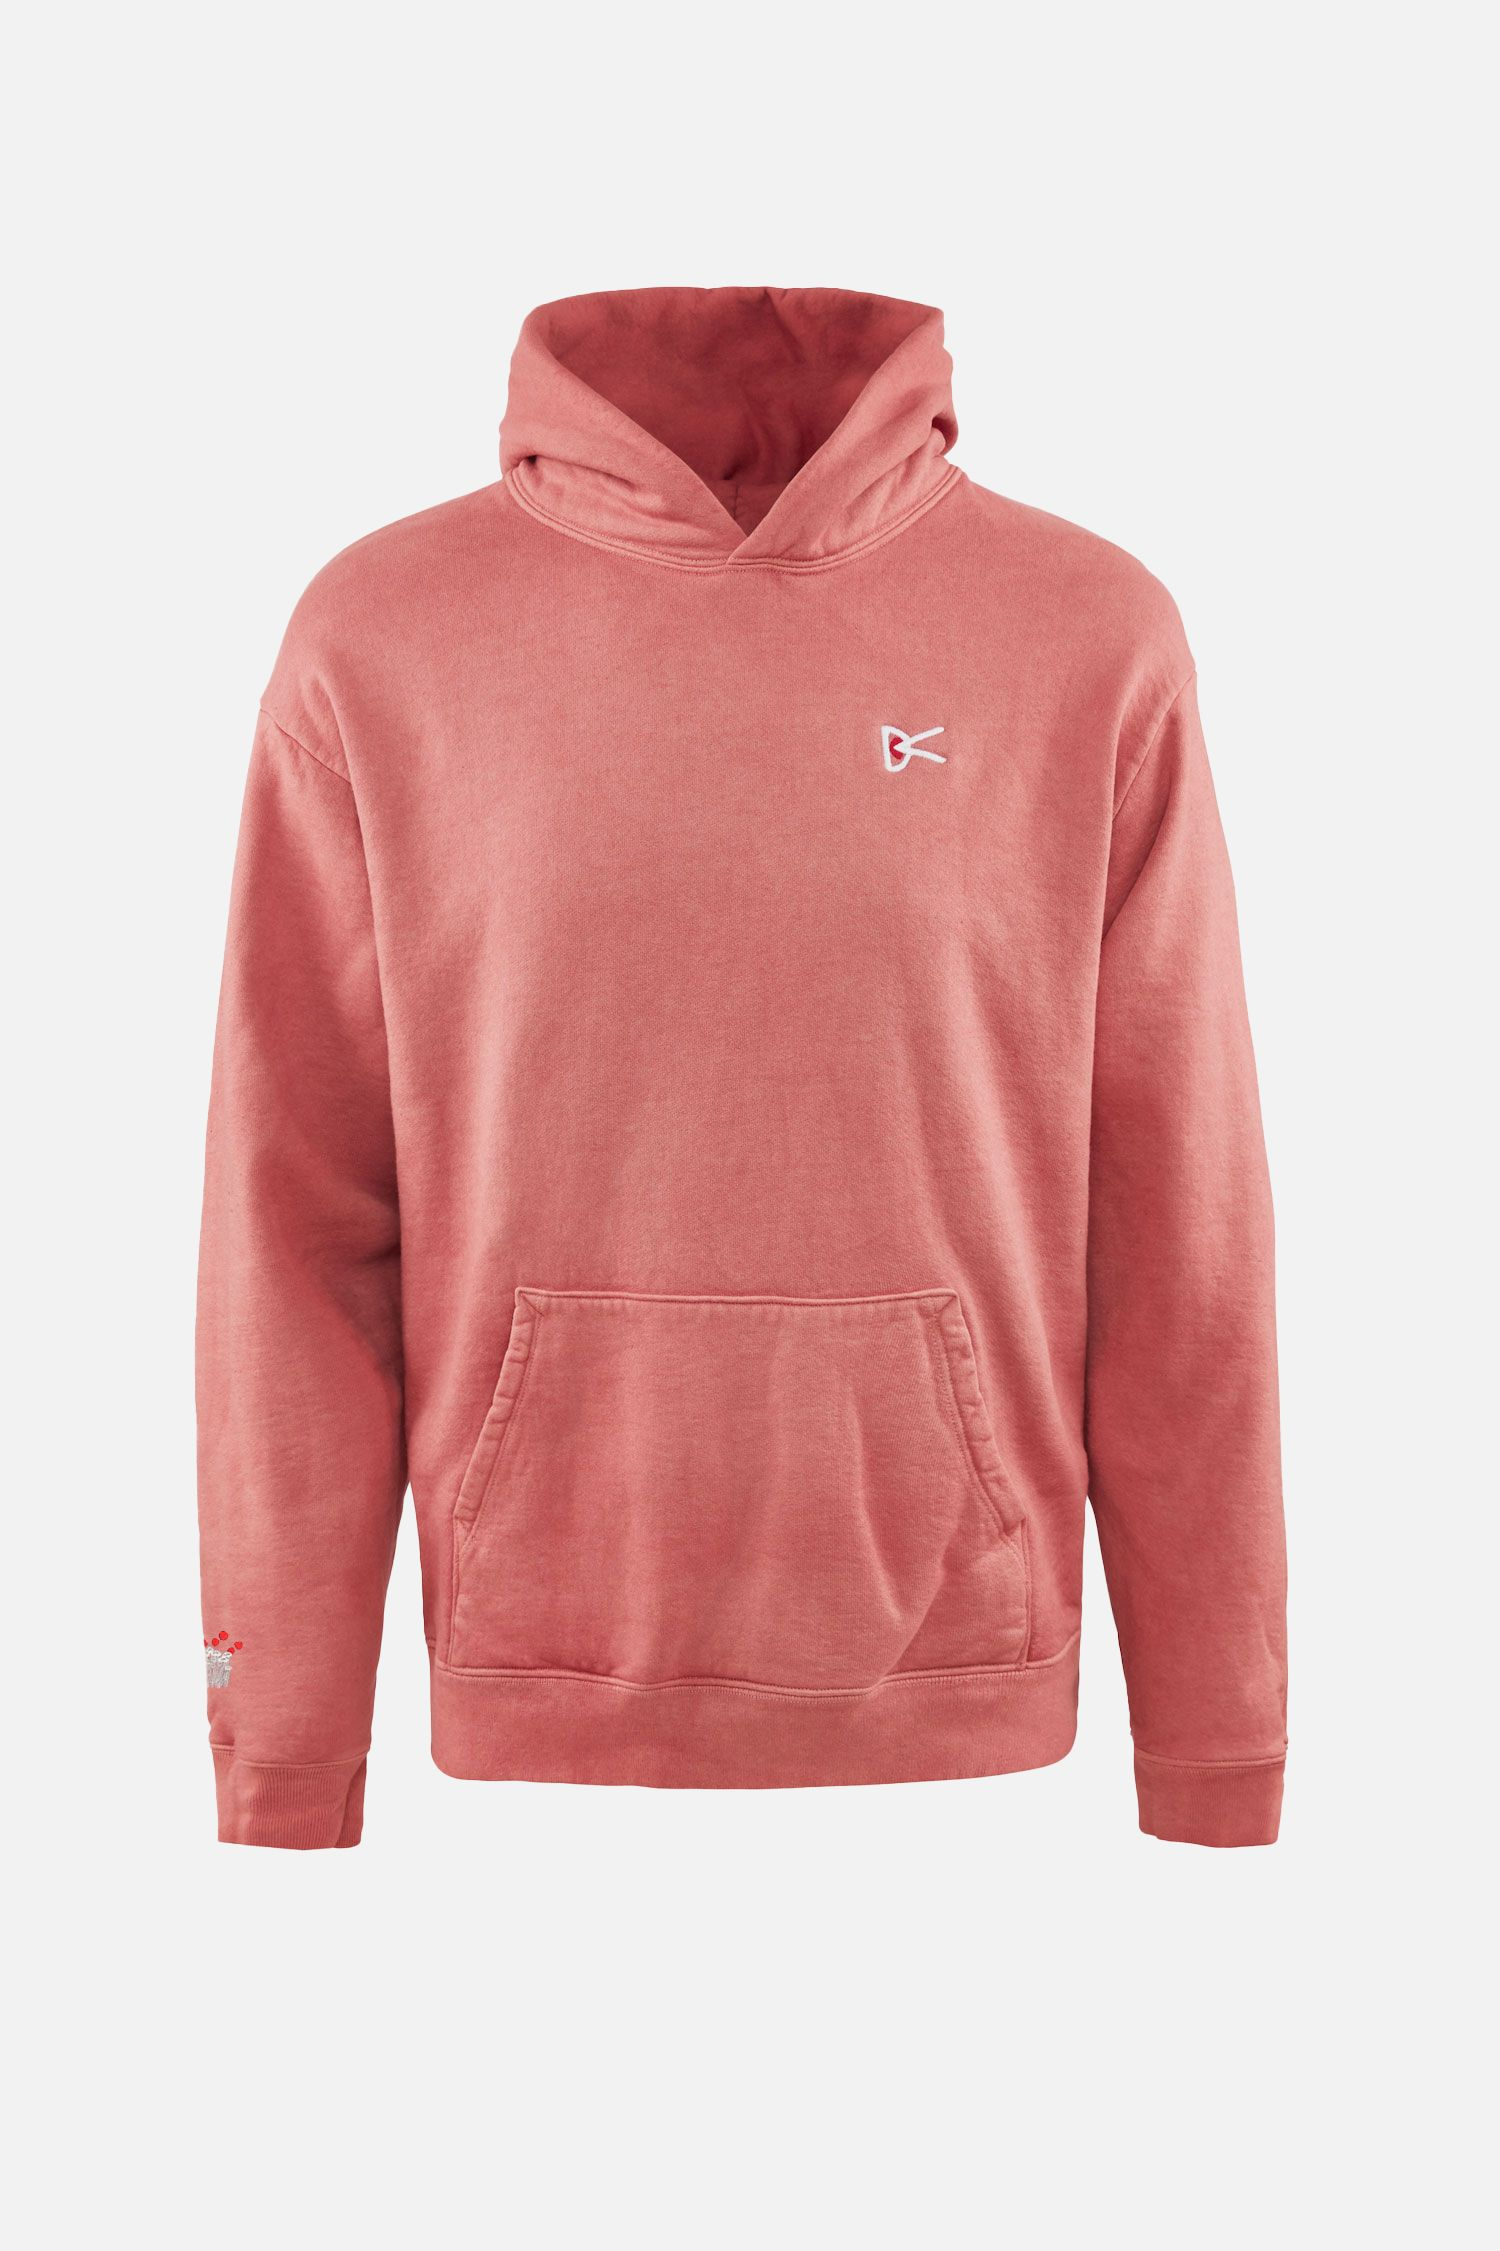 Mudita Pullover Hoodie, Madder Root Vegetable Dye